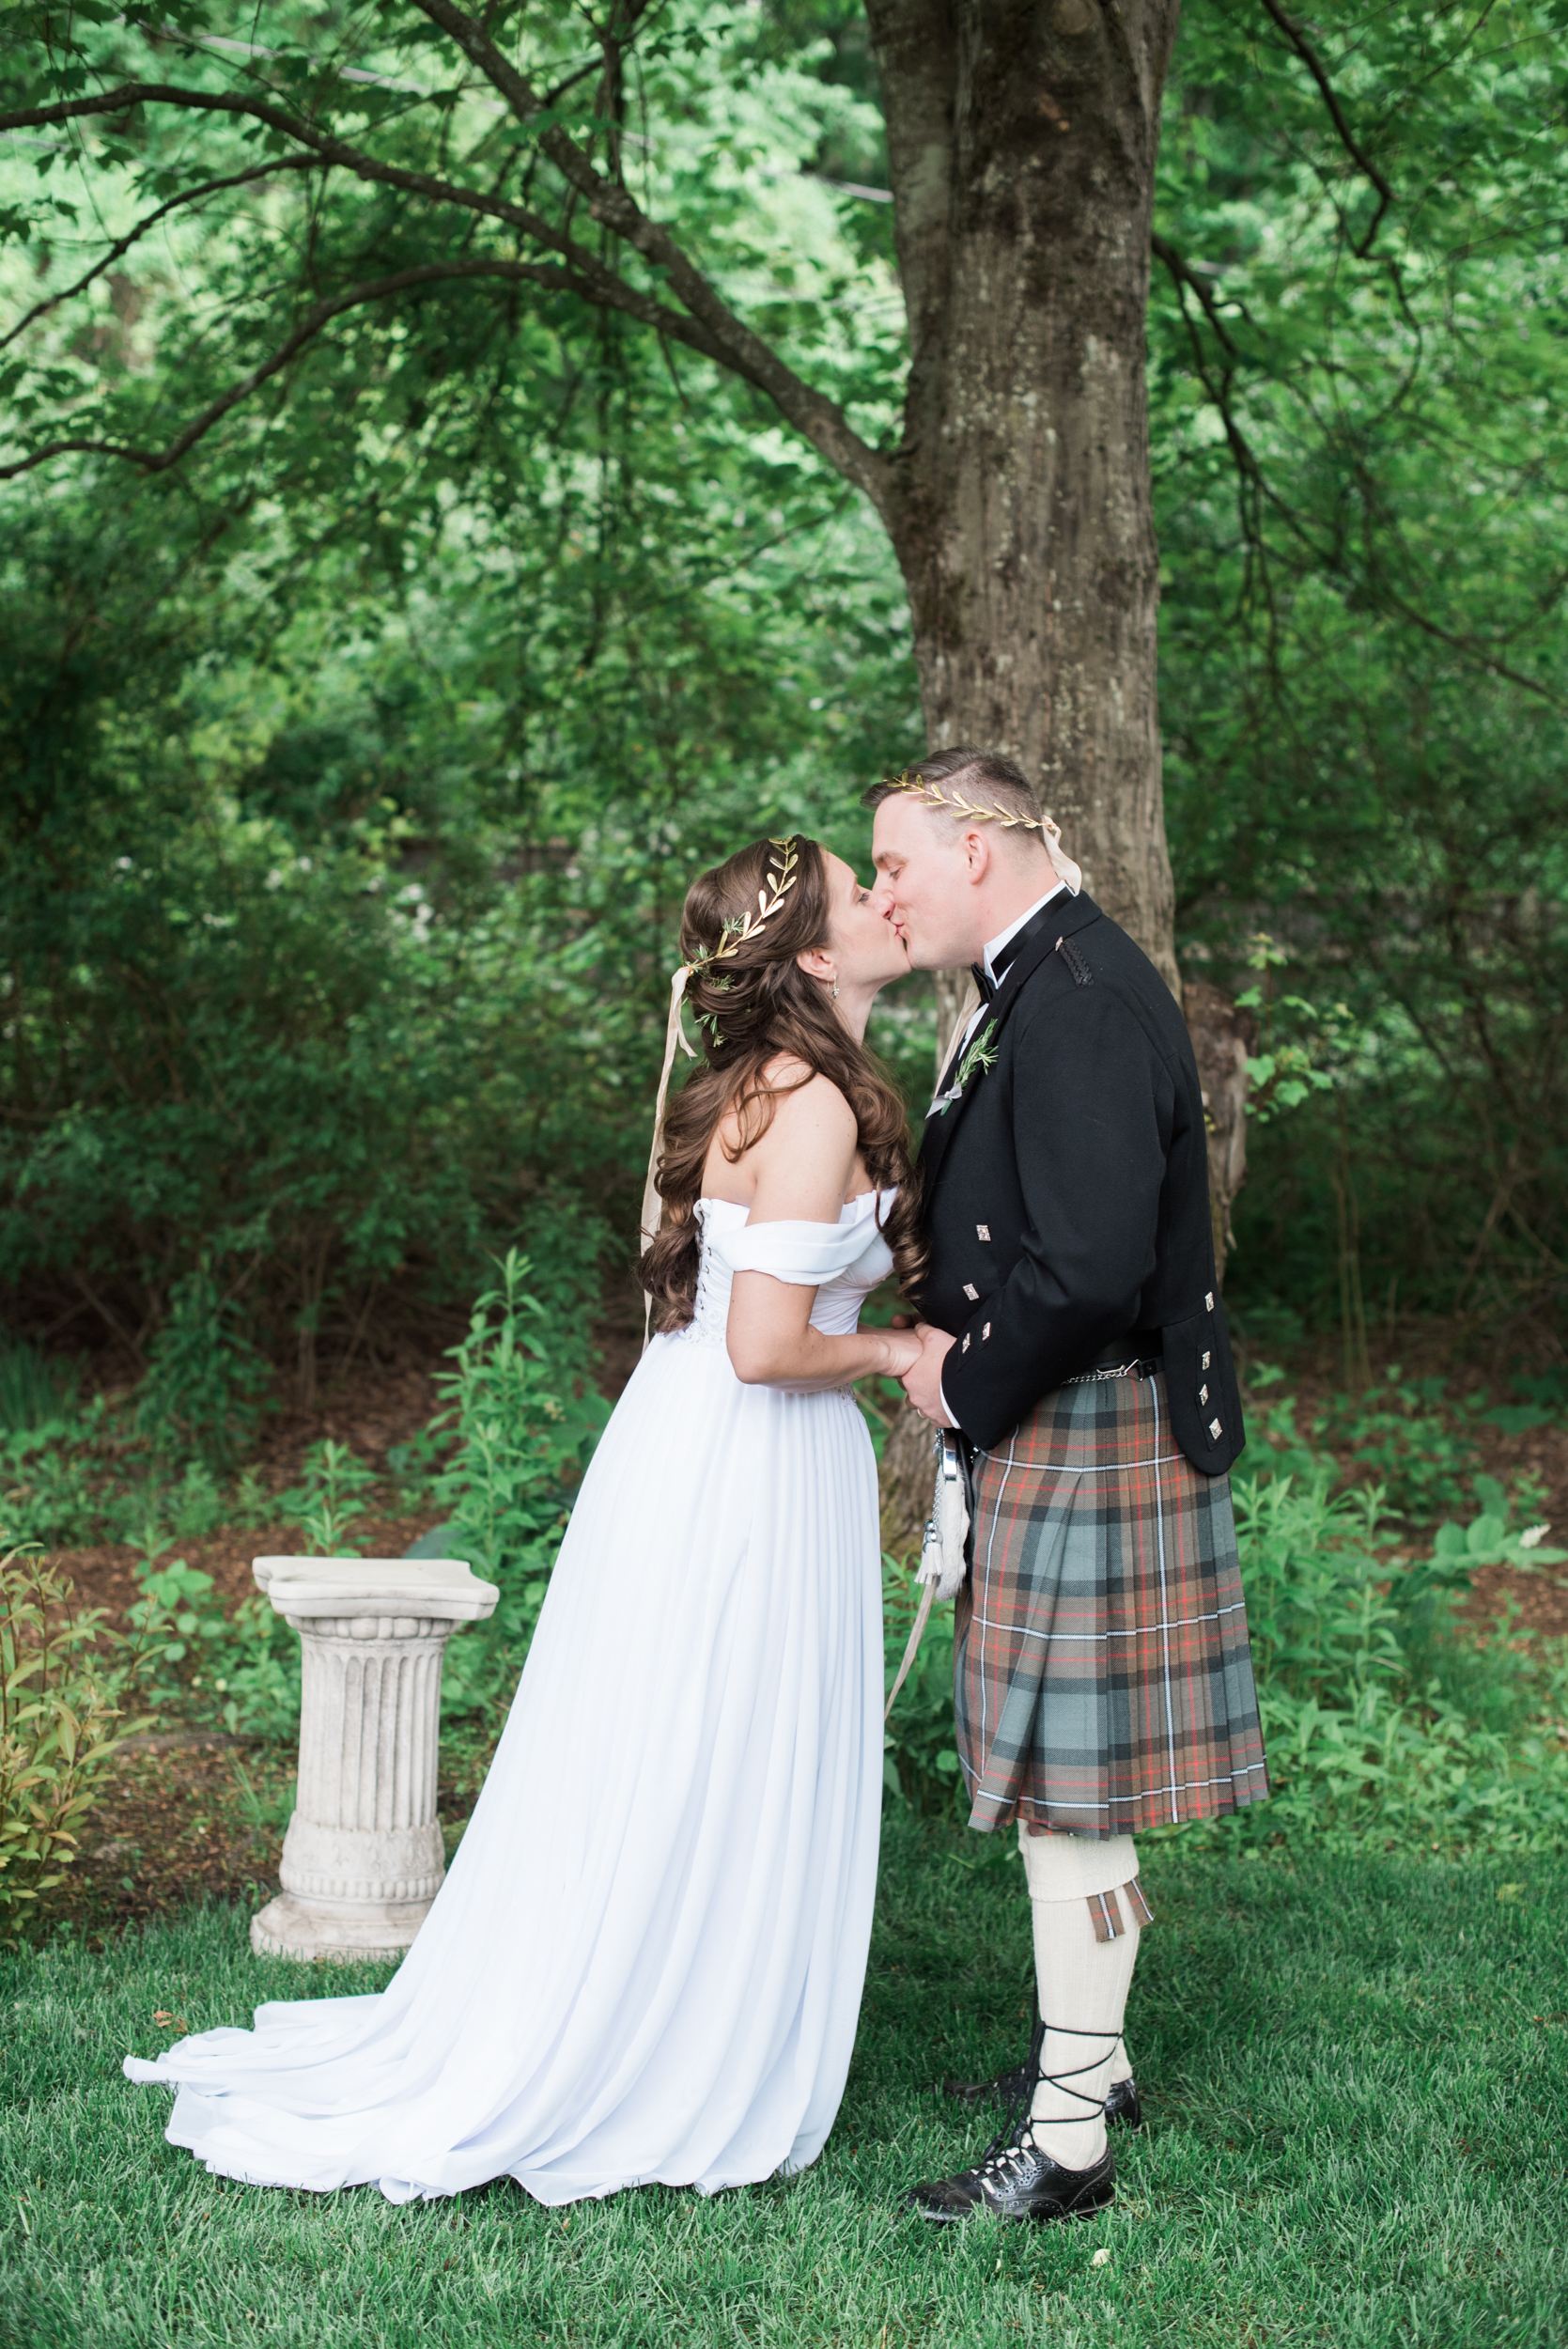 Wedding Photography in Amherst MA